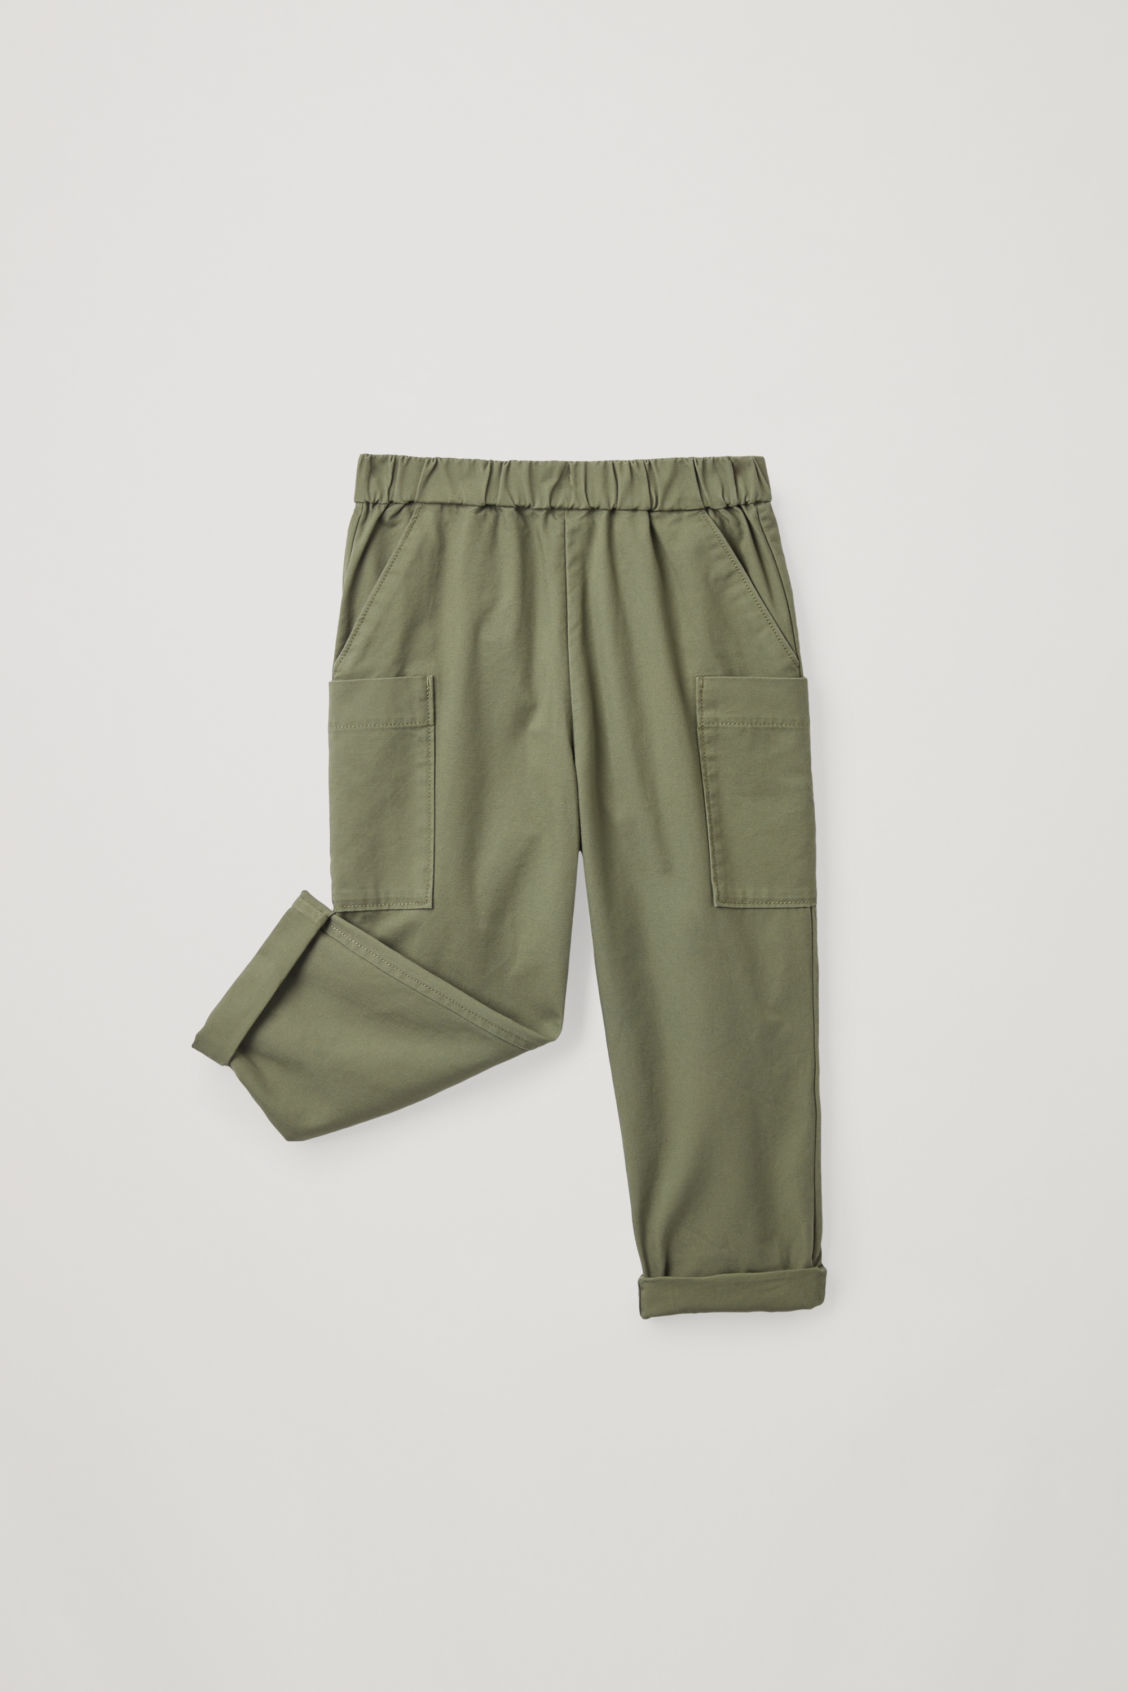 Detailed image of Cos cotton trousers with patch pockets  in green